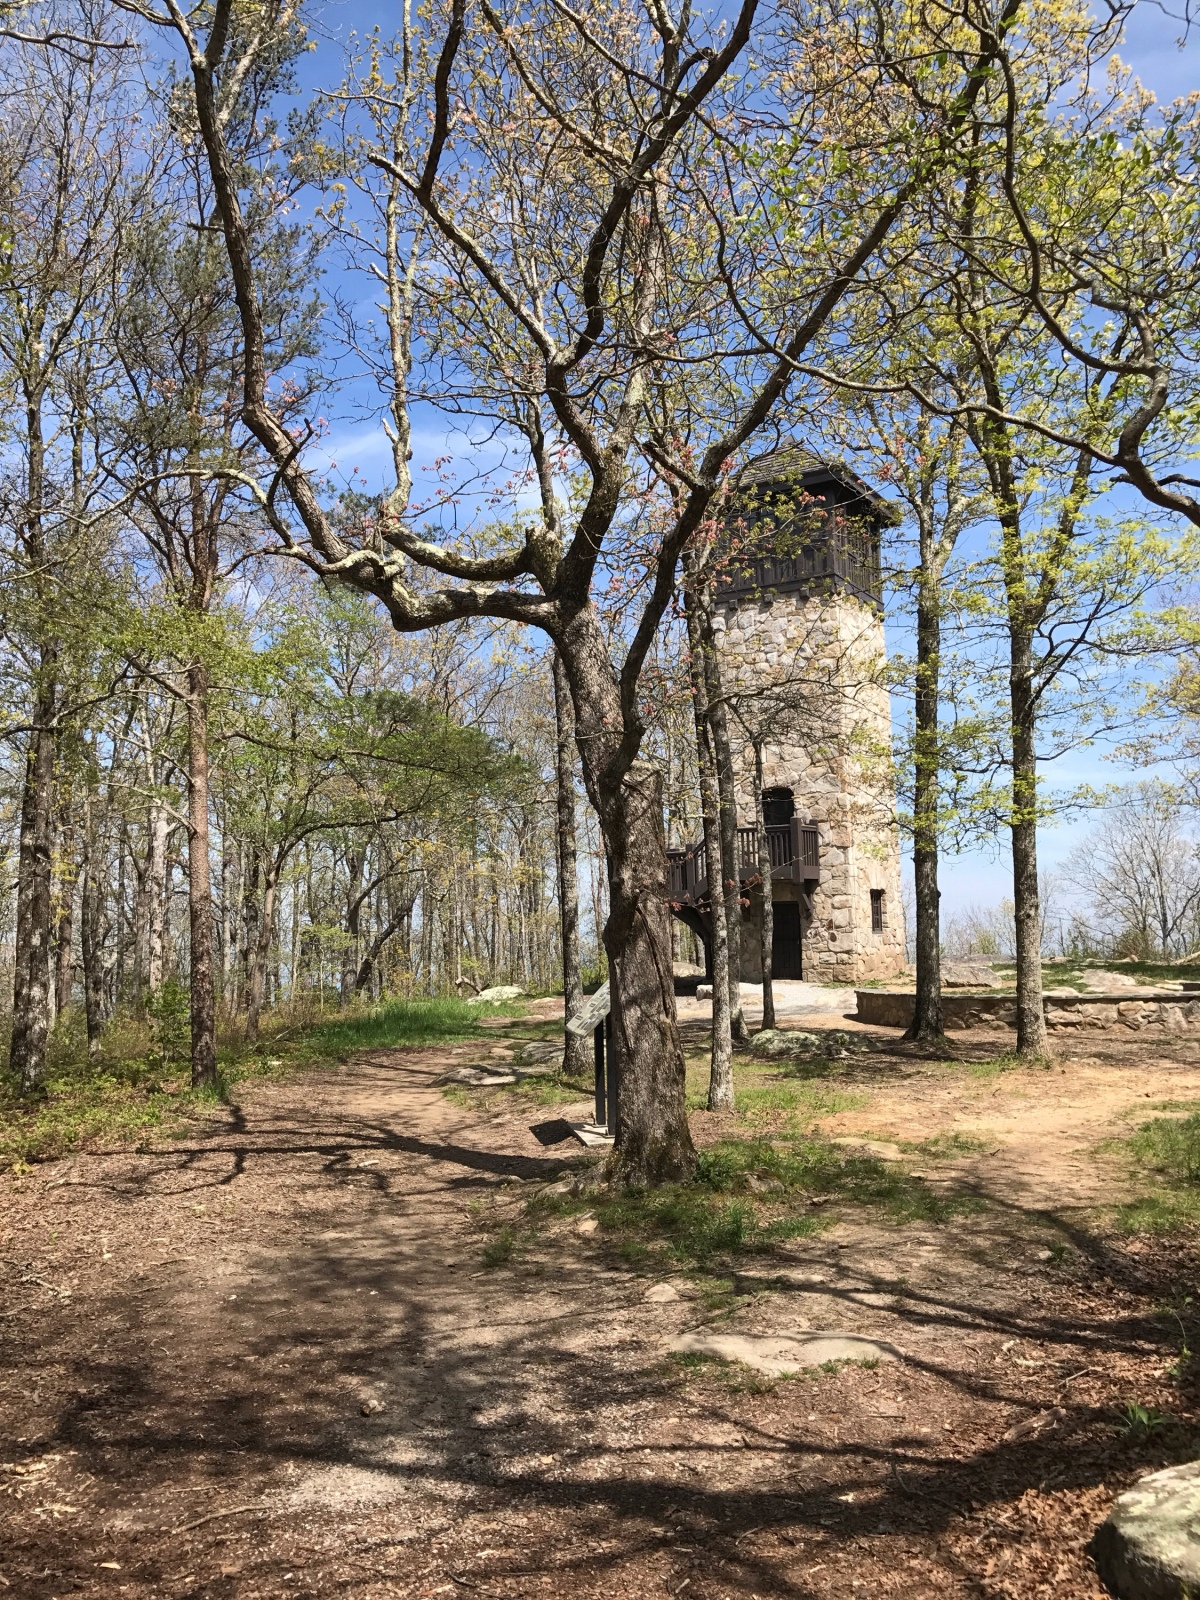 Fort Mountain State Park: FamilyHiking